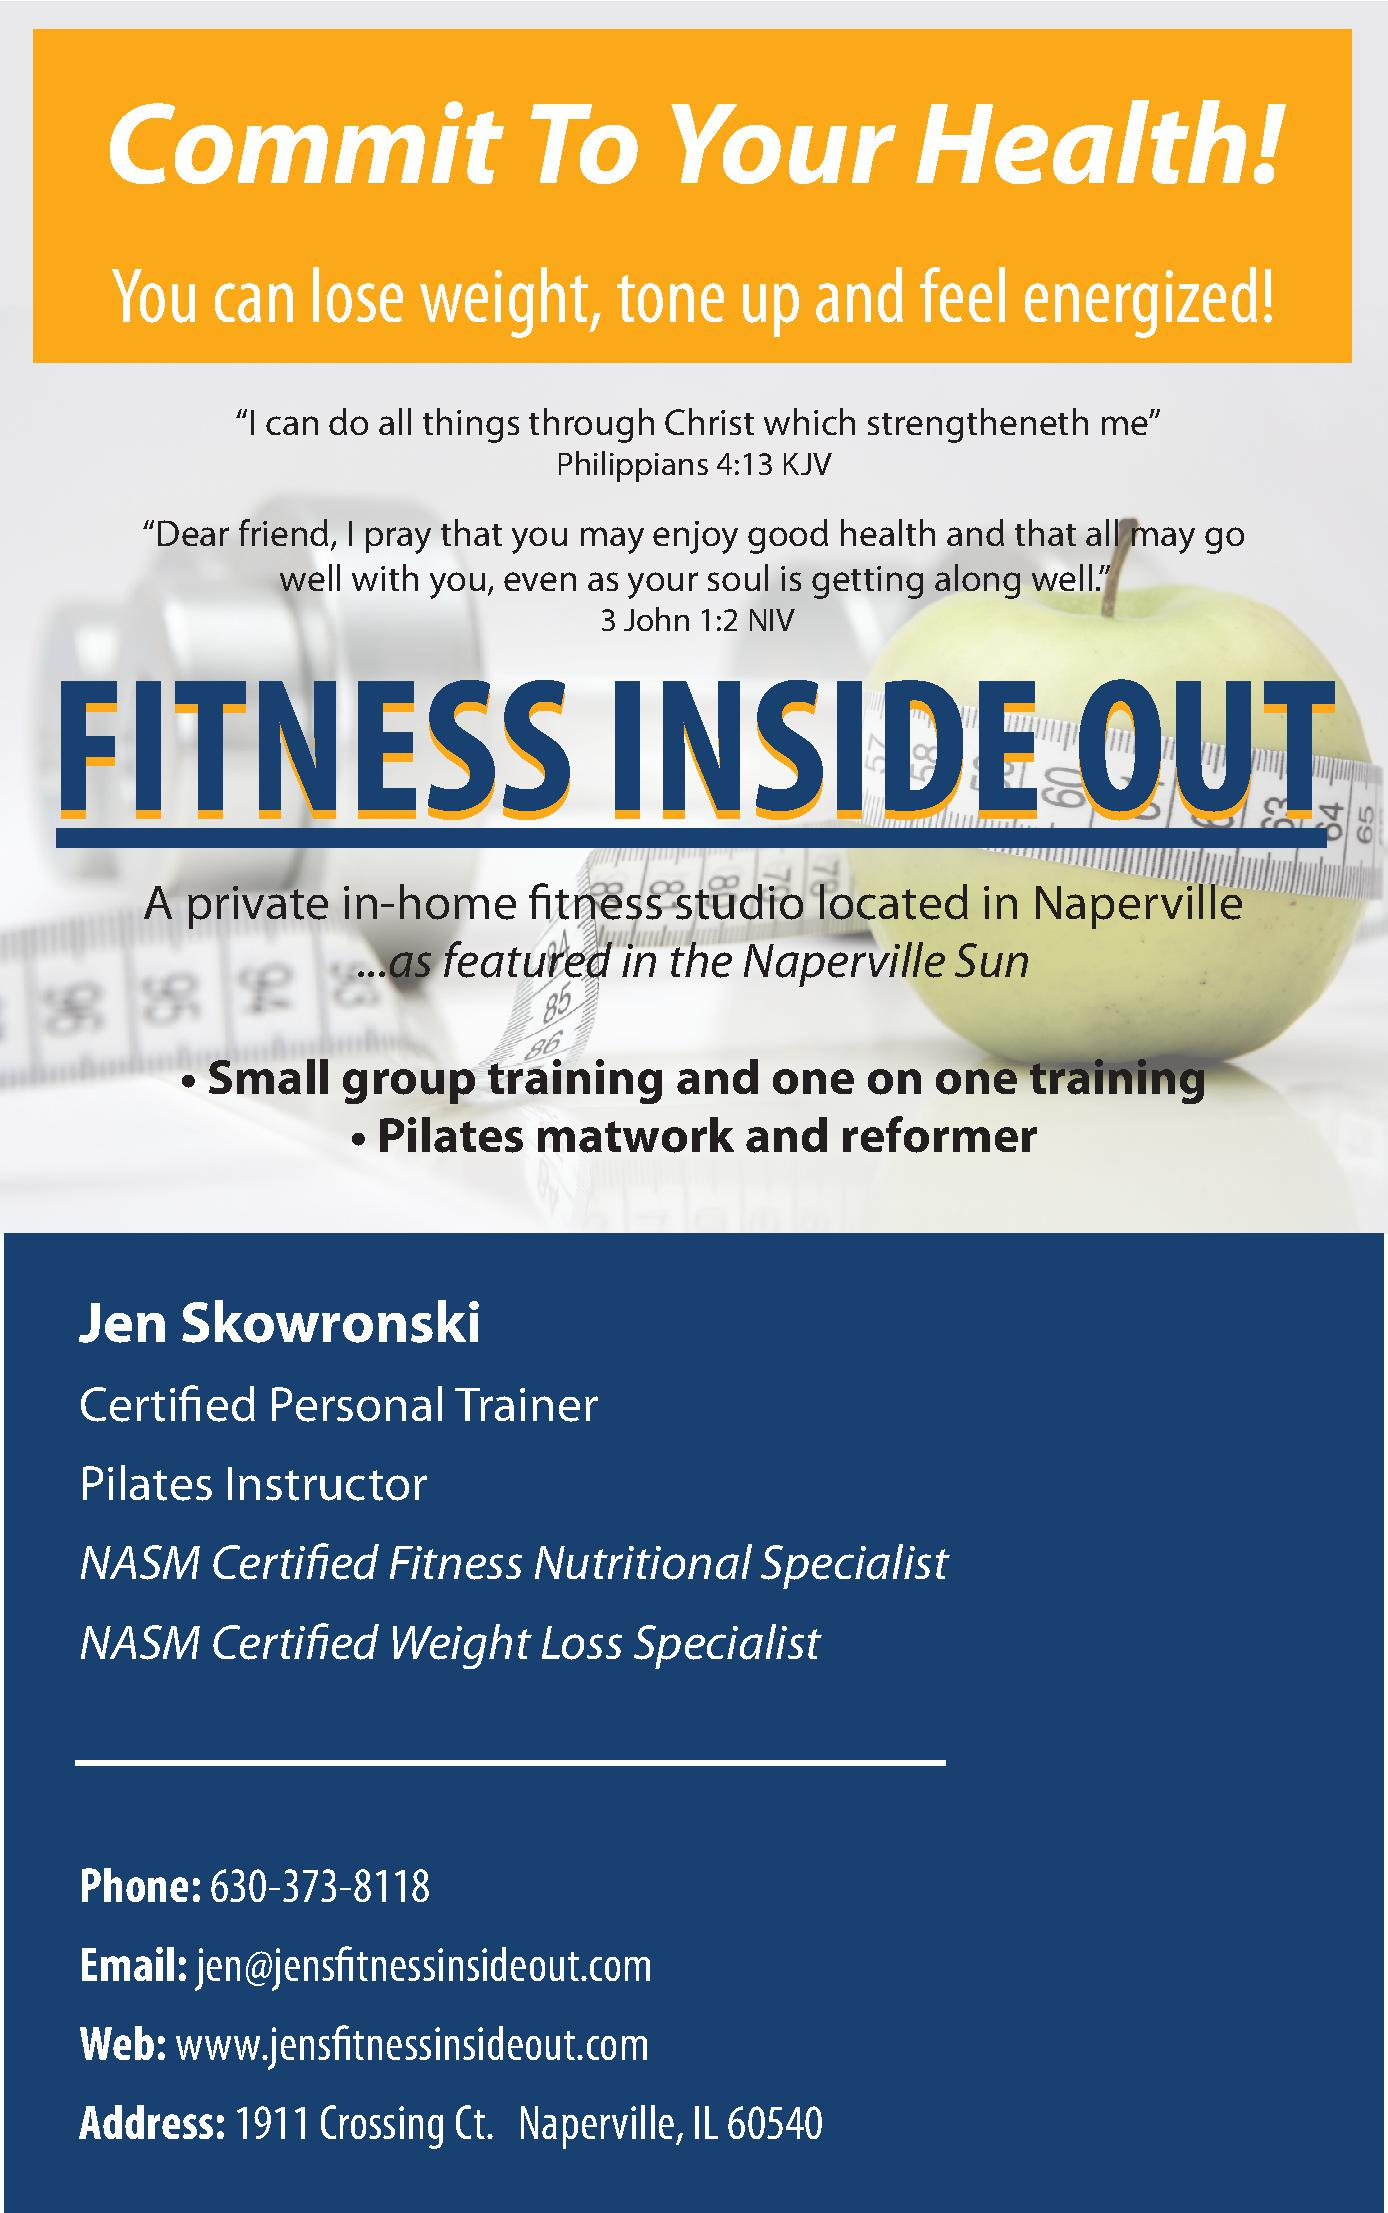 Fitness Inside Out Inc.